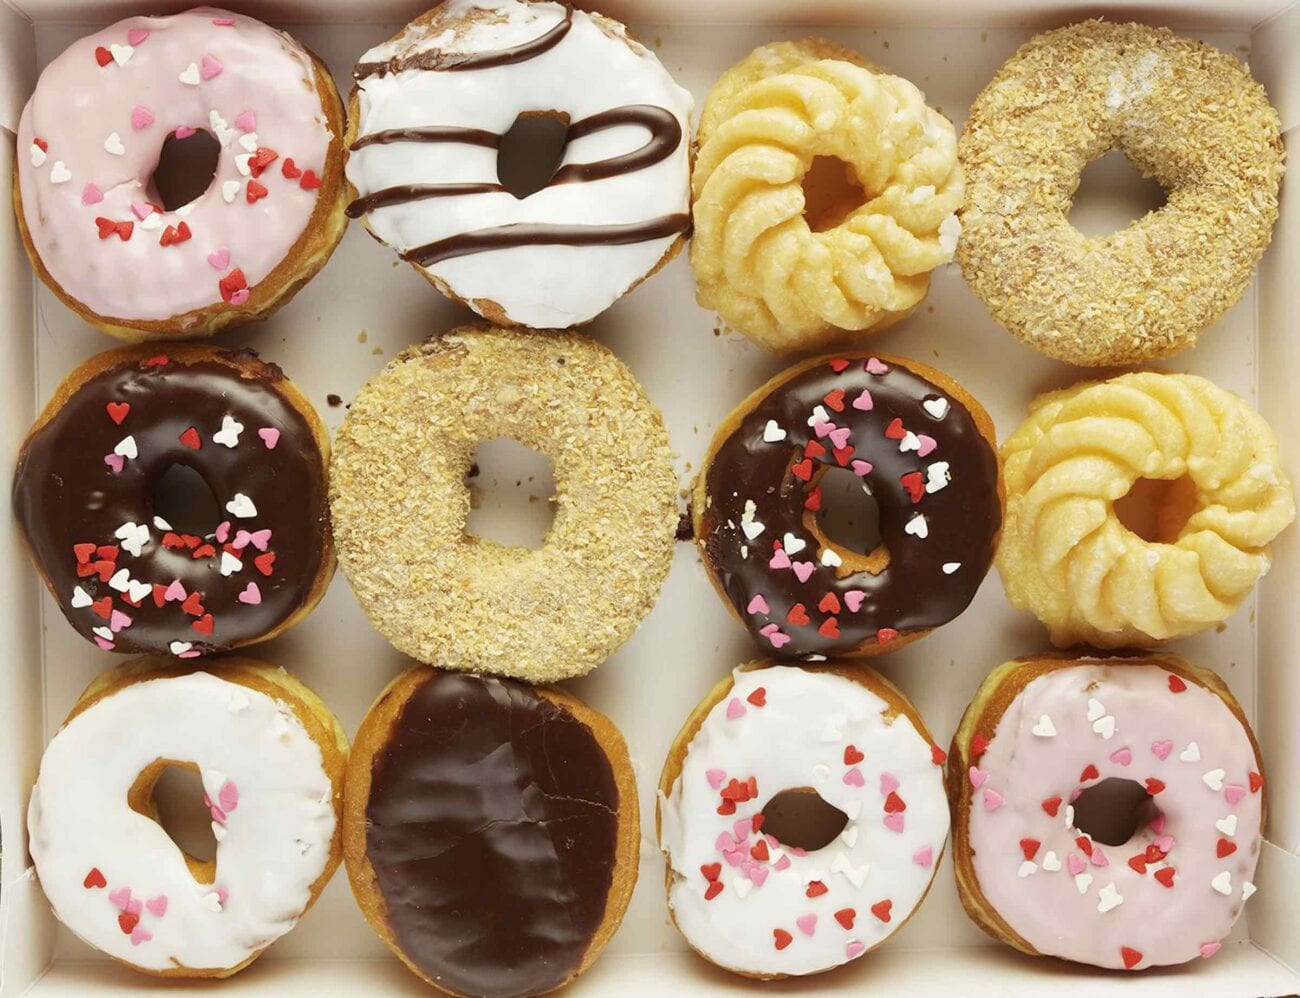 National Donut Day brings us a nice sweet start to summer with these easy donut recipes! Grab your donut pans and let's get cooking!